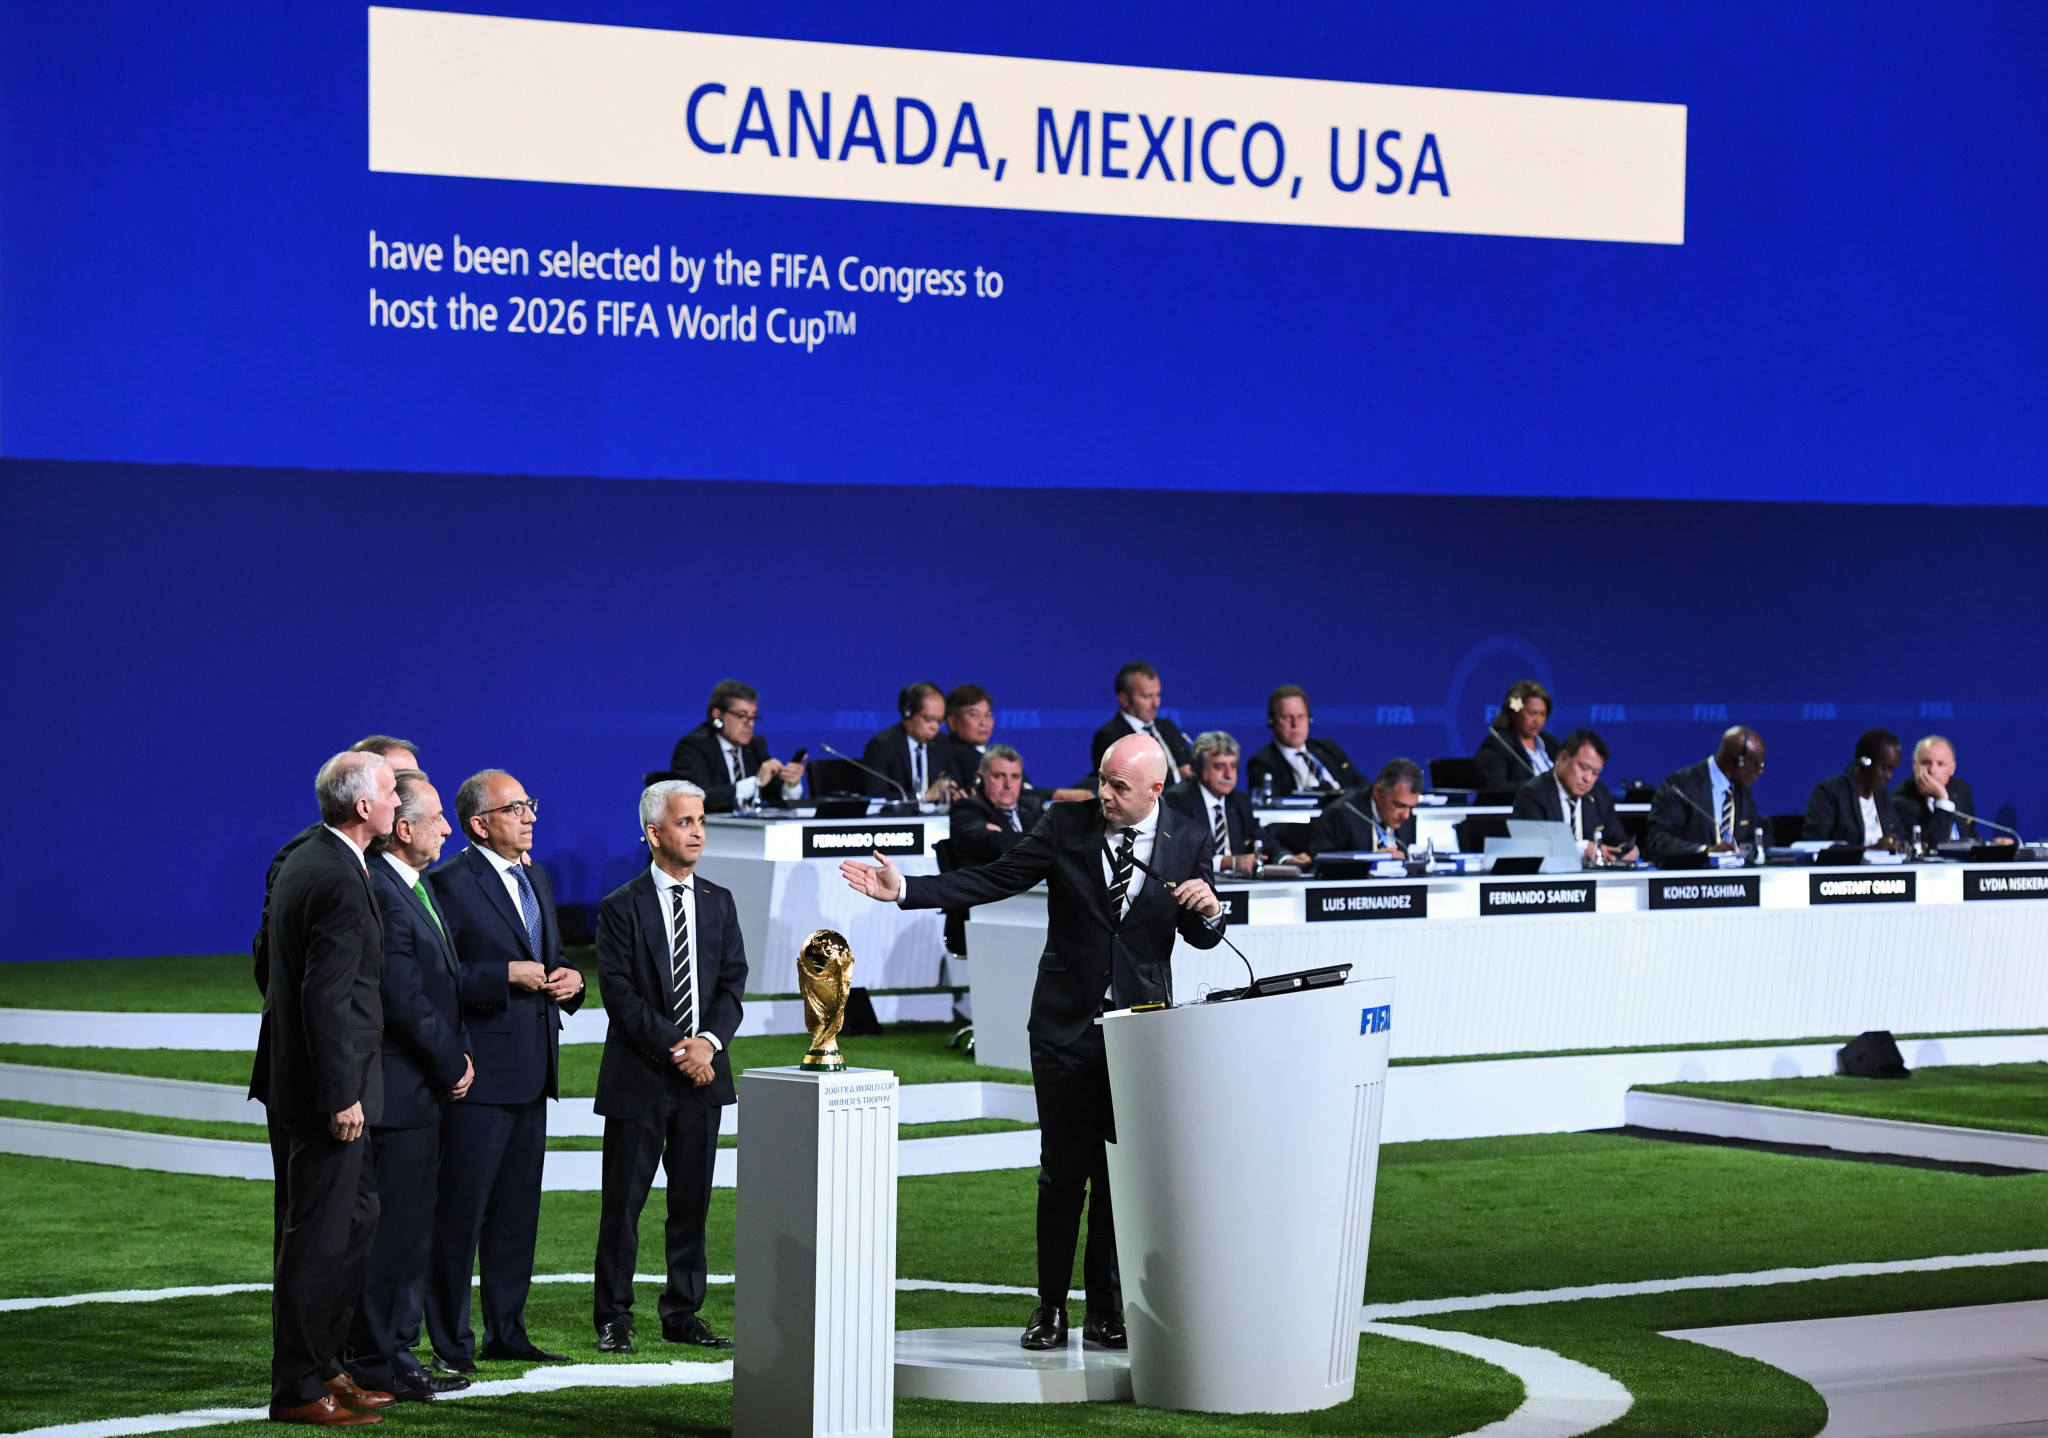 Virtual workshop to be held for all 17 United States cities bidding to host matches at 2026 FIFA World Cup